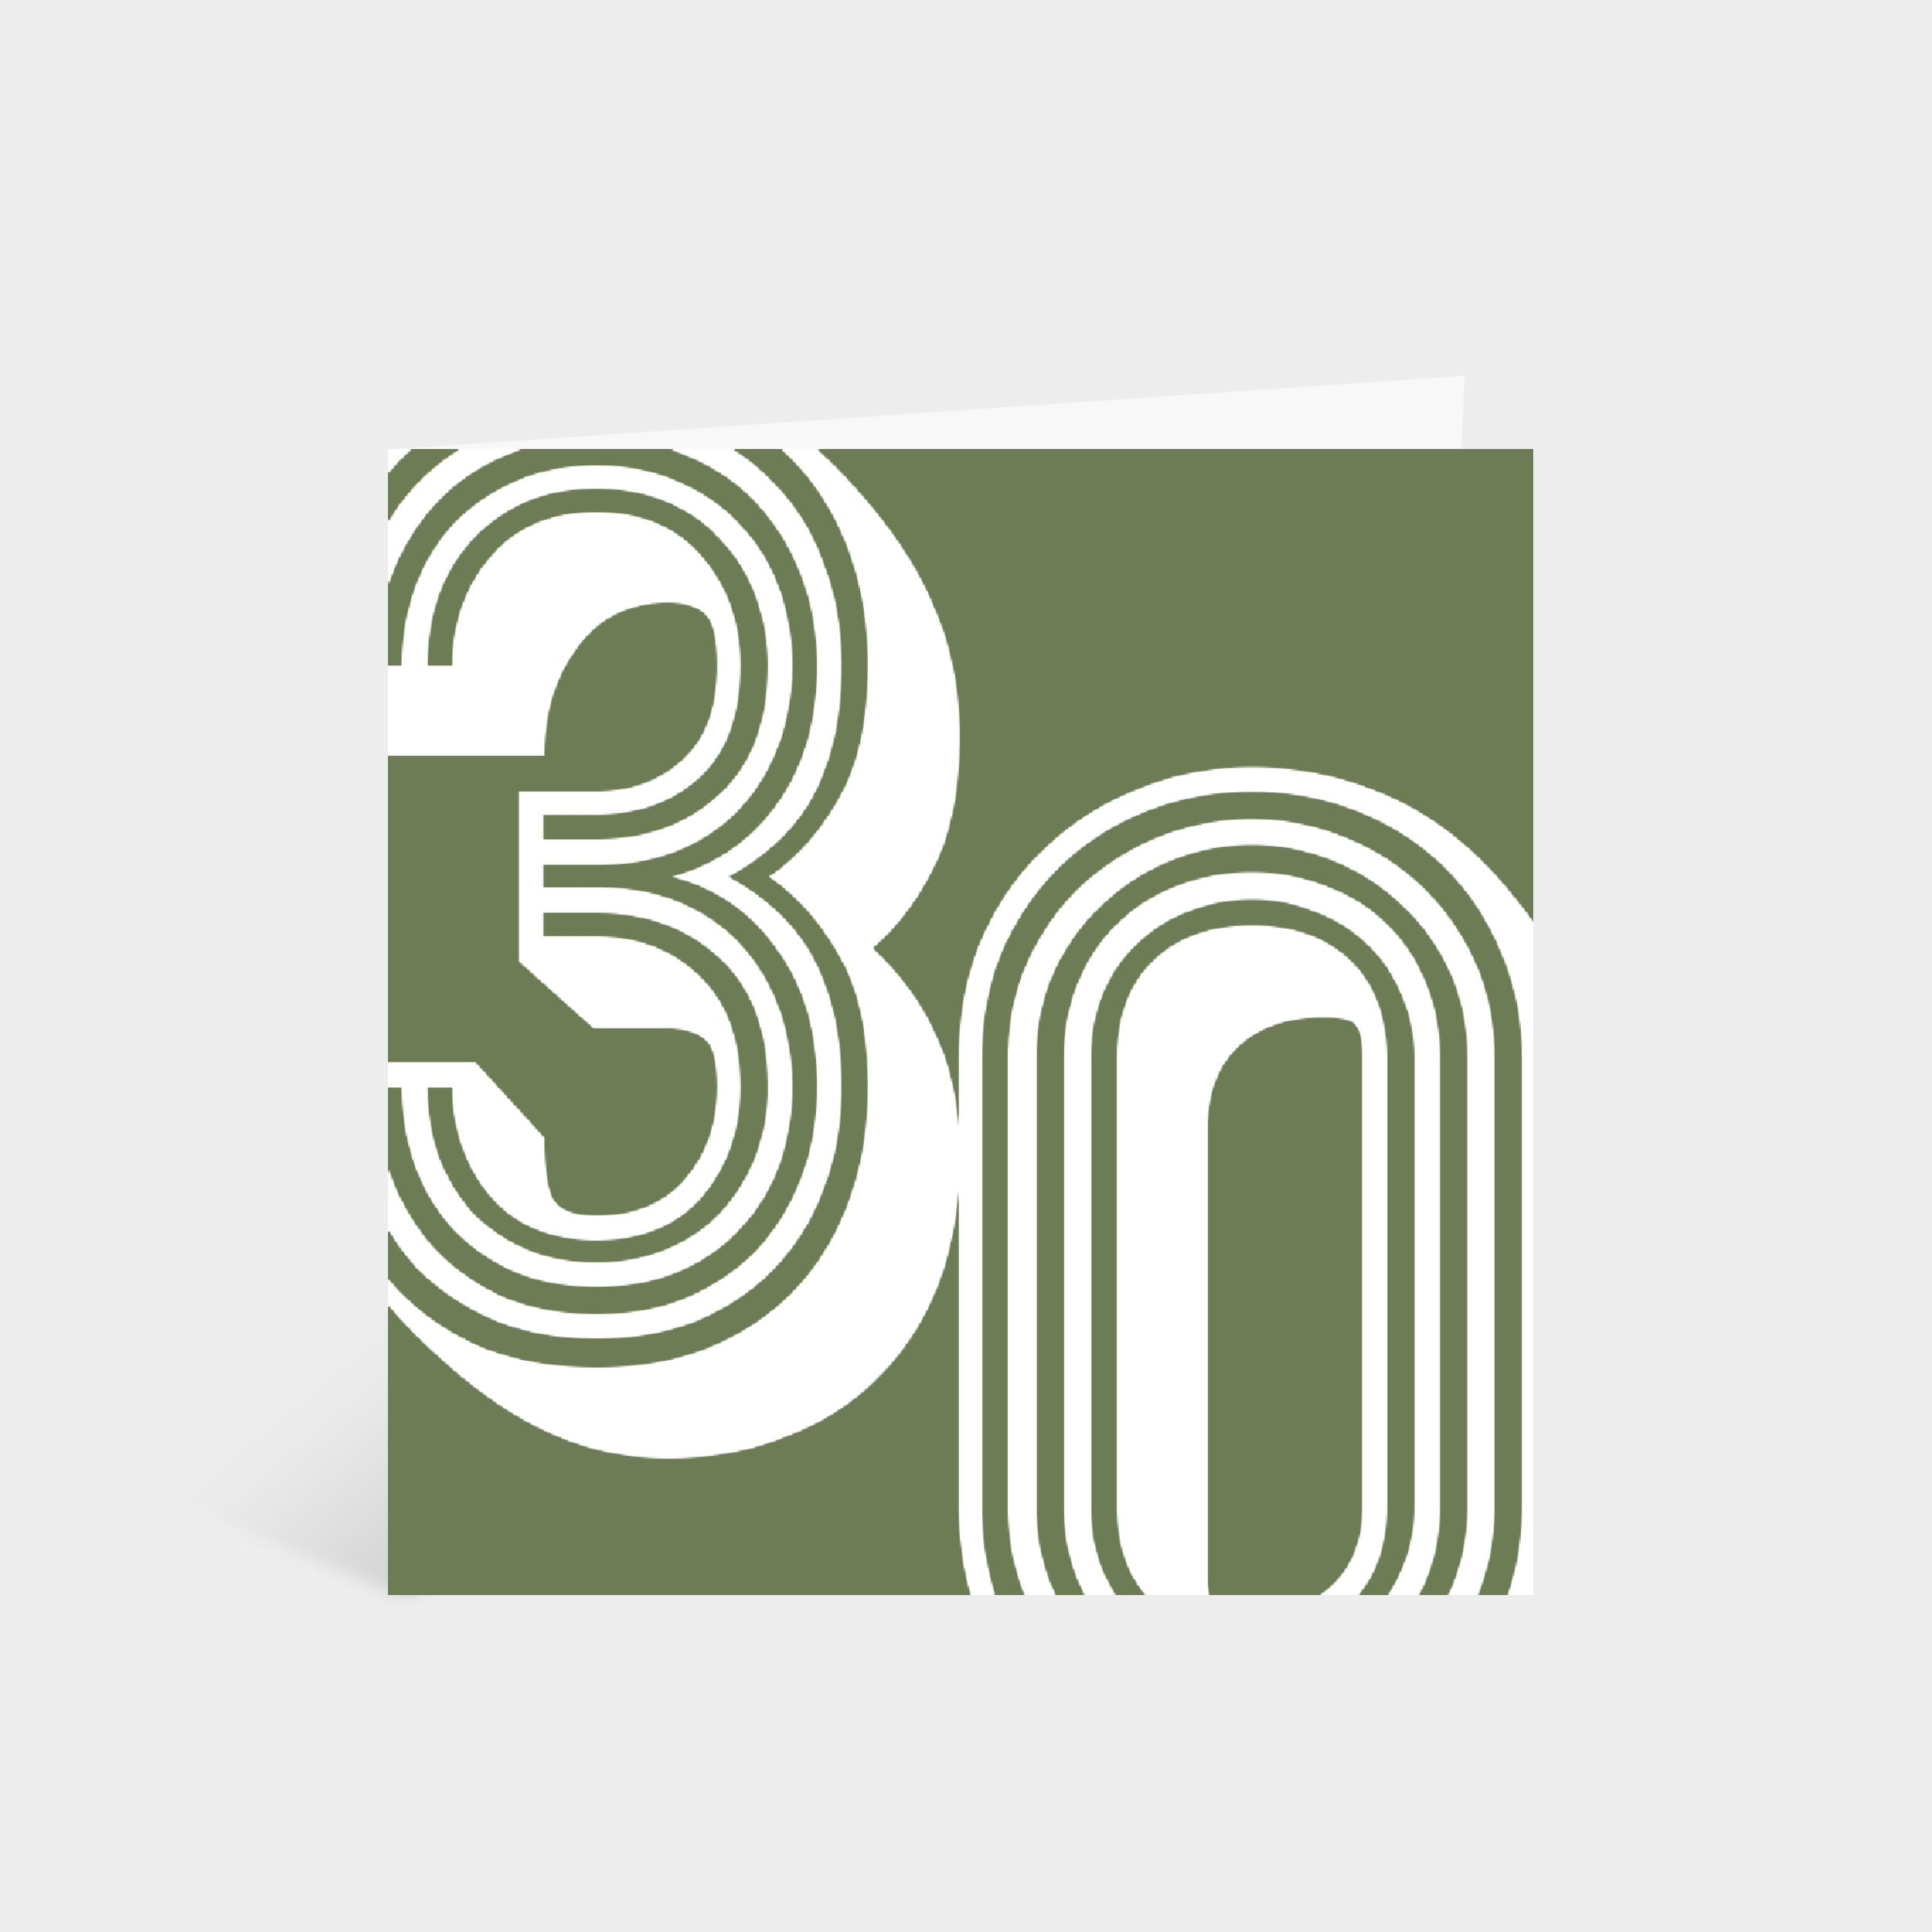 Standing square green card with the number '30' in a white large retro font